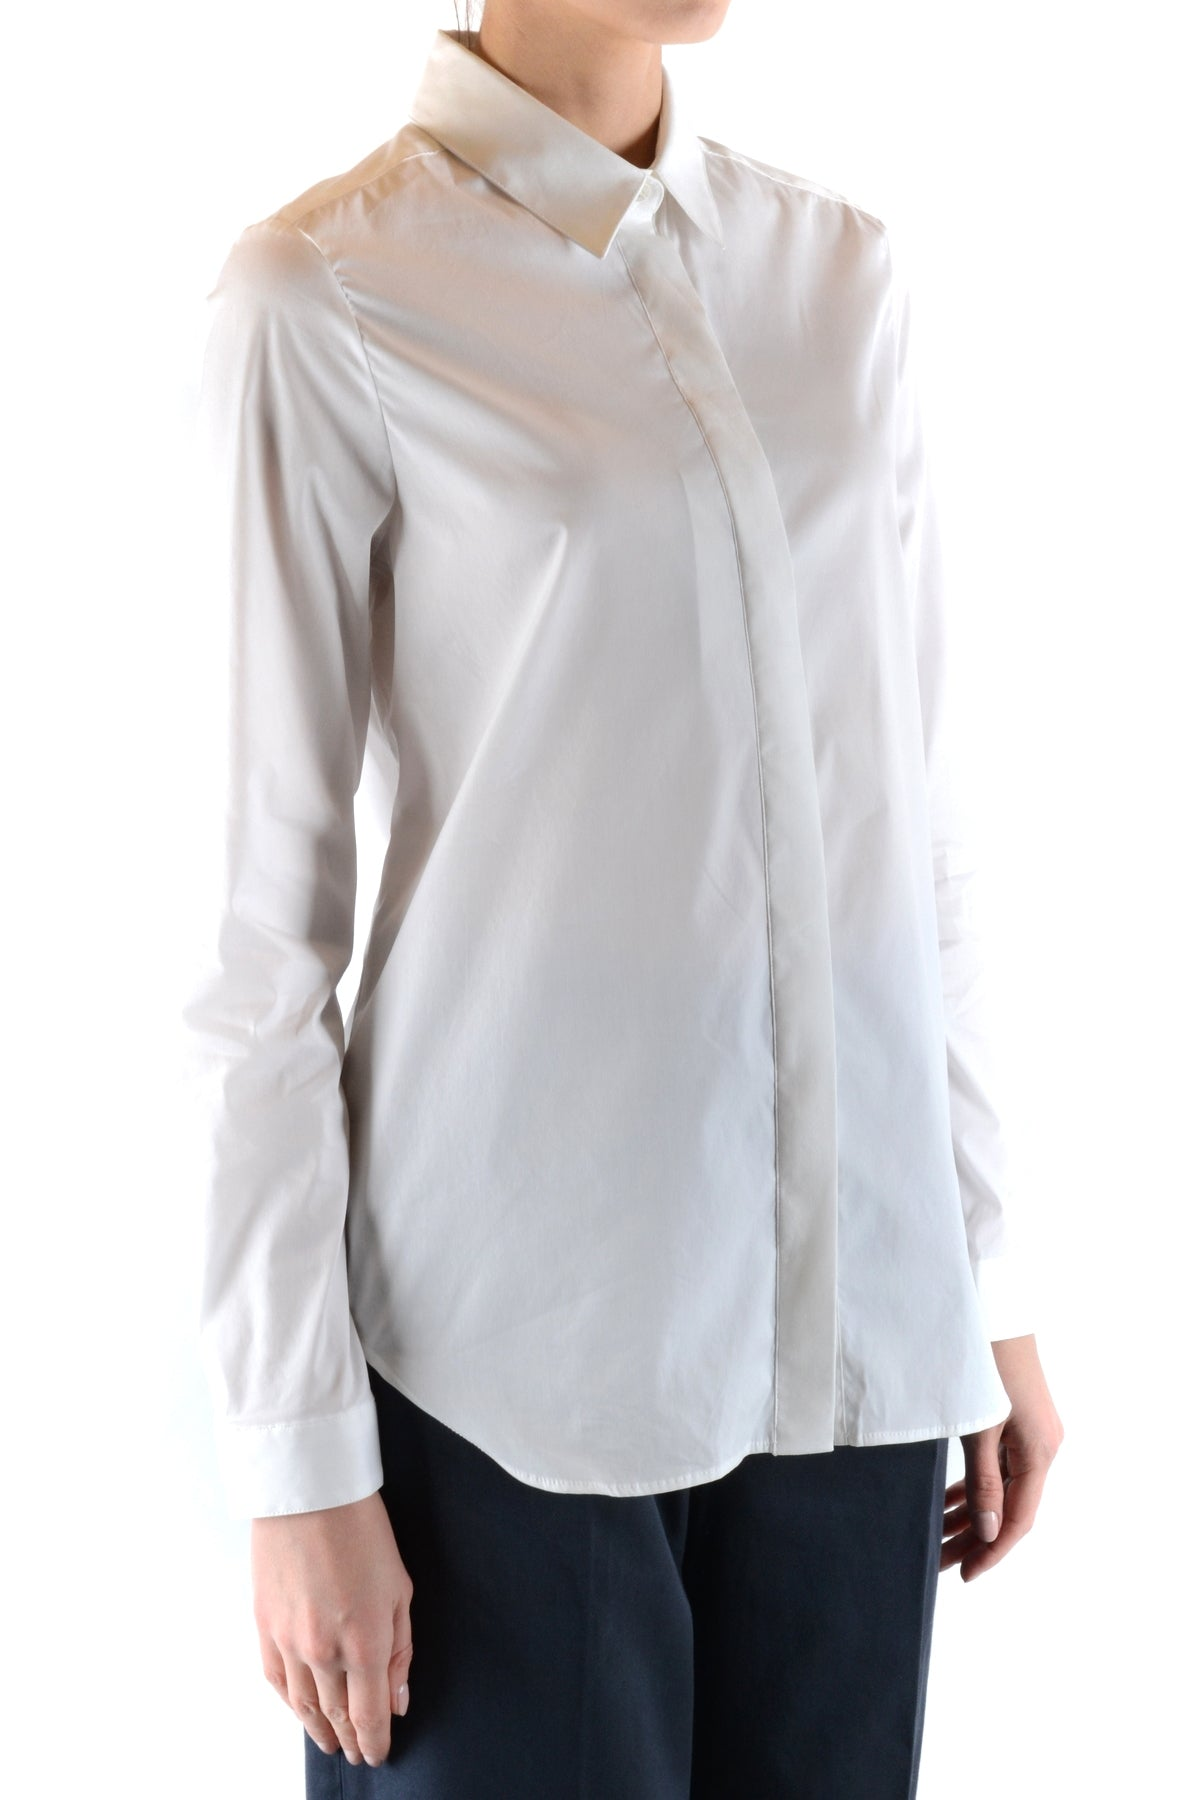 Shirt Burberry-Shirt - WOMAN-Product Details Season: Spring / SummerTerms: New With LabelMain Color: WhiteGender: WomanMade In: RomaniaManufacturer Part Number: 3899818 1006Size: ItYear: 2018Clothing Type: CamiciaComposition: Cotton 78%, Polyamide 18%-Keyomi-Sook